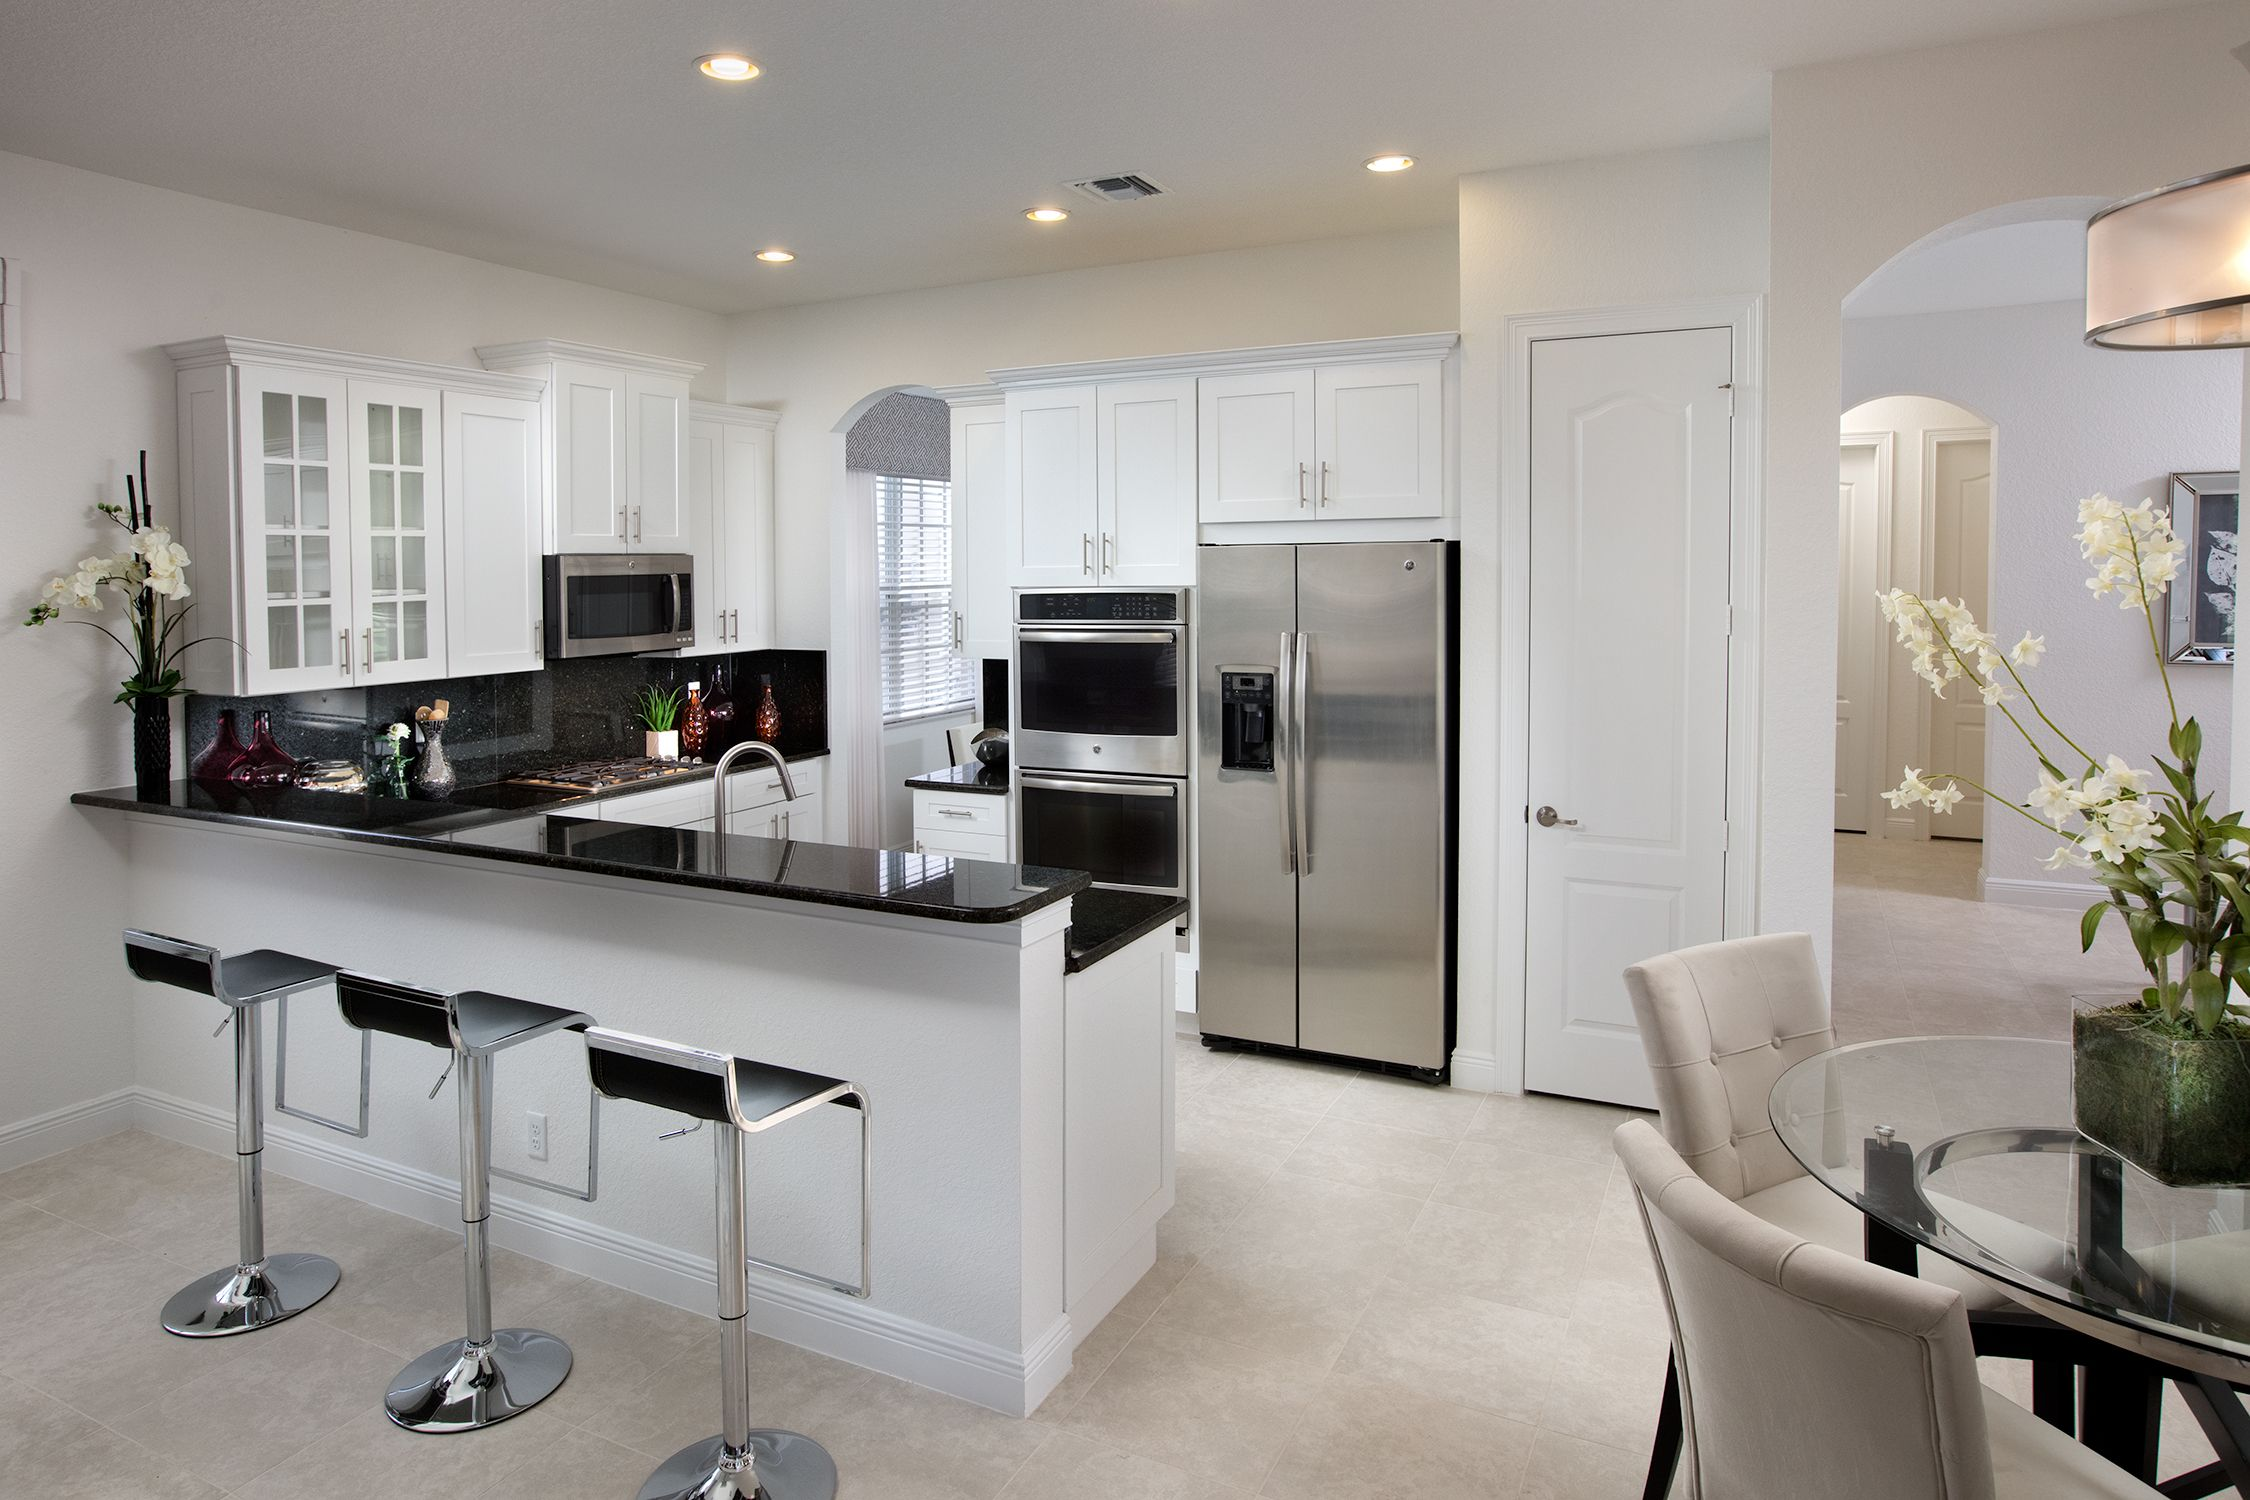 Lennar Florida Deals In Southeast Florida Home New Homes New Homes For Sale